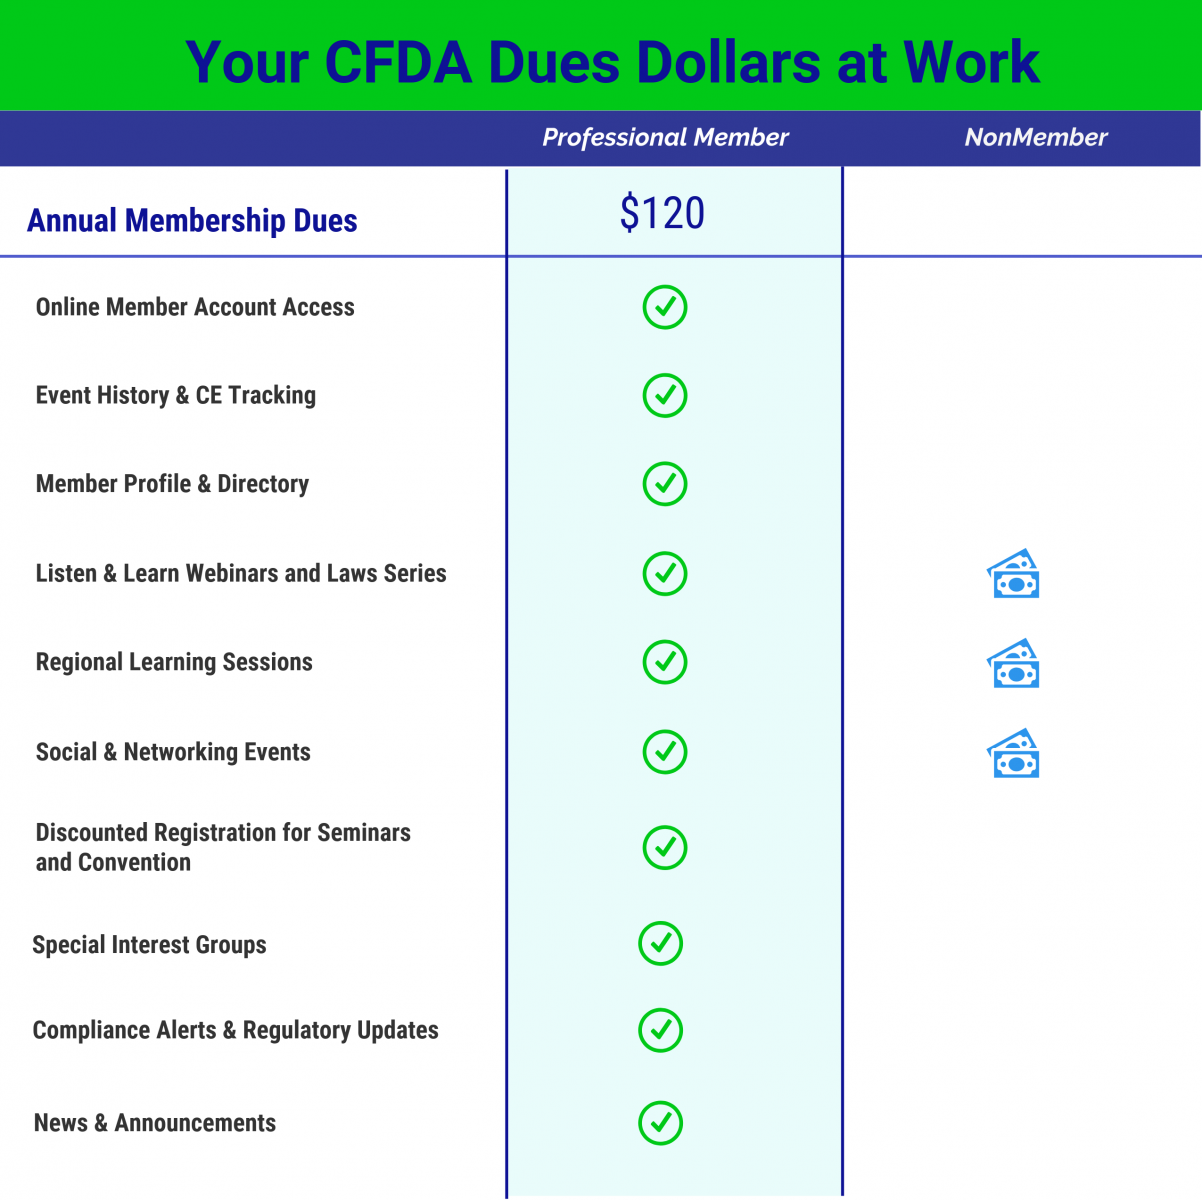 CFDA Dues Dollars at Work